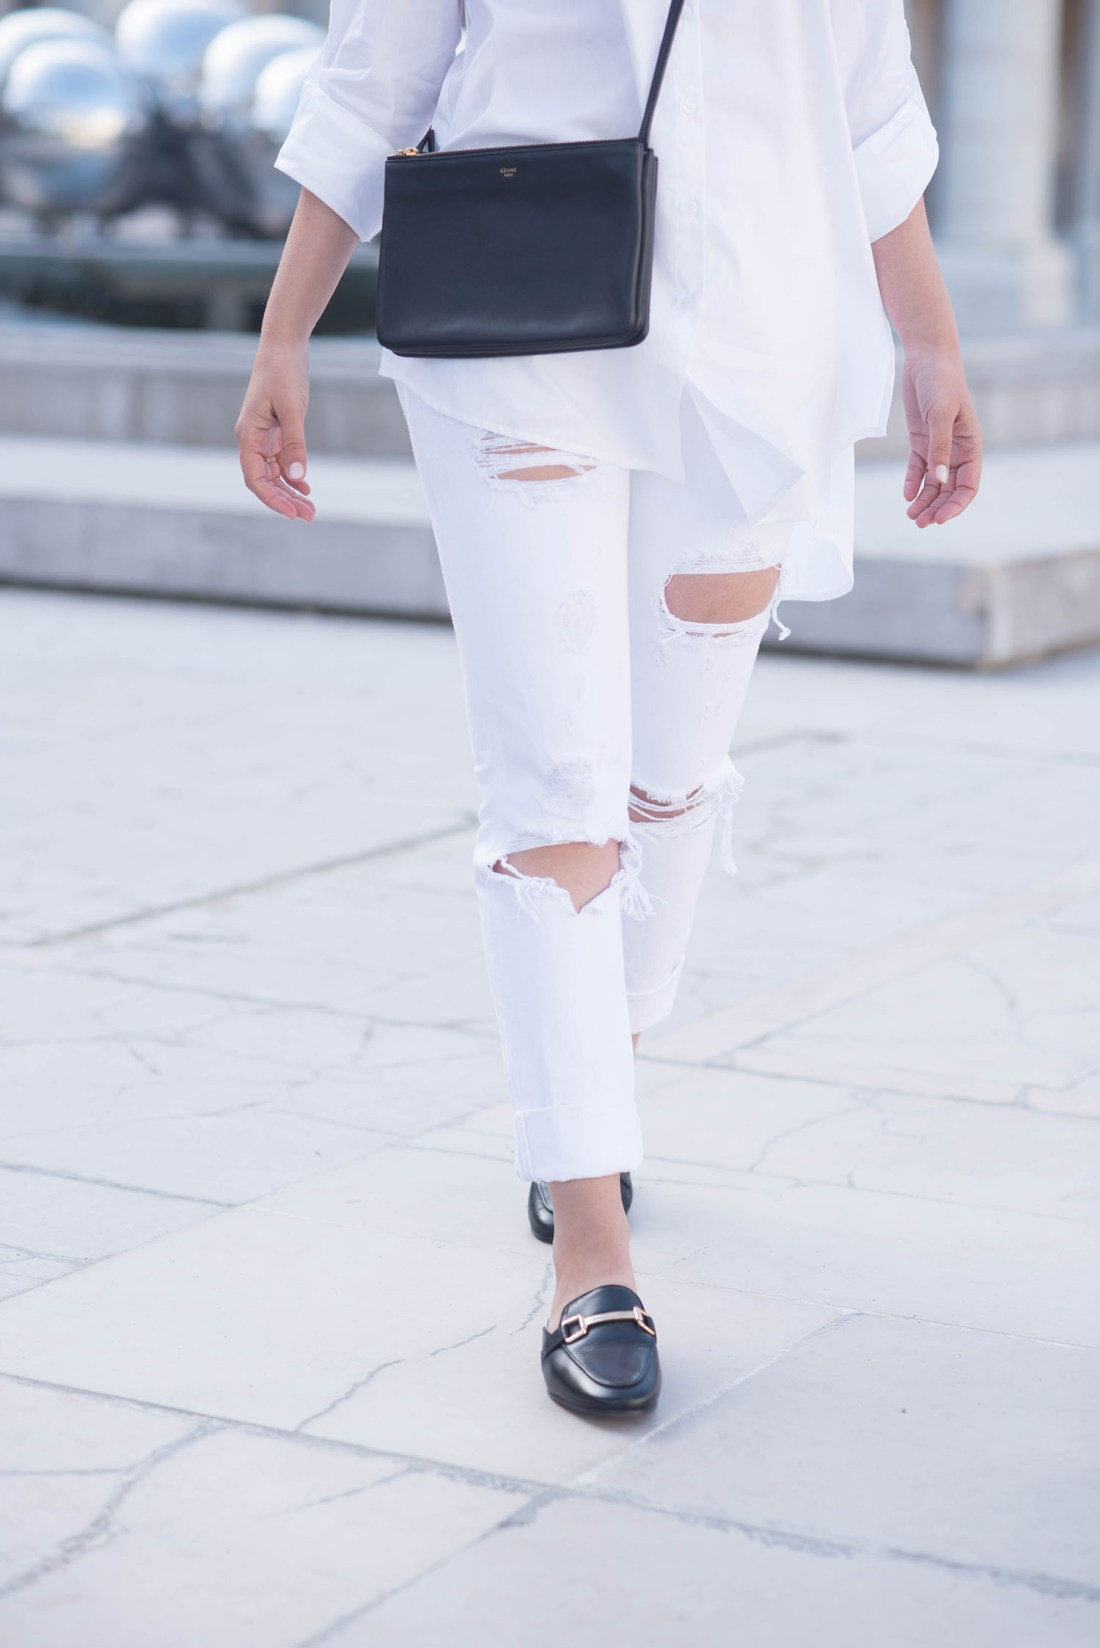 Outfit details on fashion blogger Cee Fardoe of Coco & Vera, wearing Grlfrnd Karolina jeans and Jonak mules